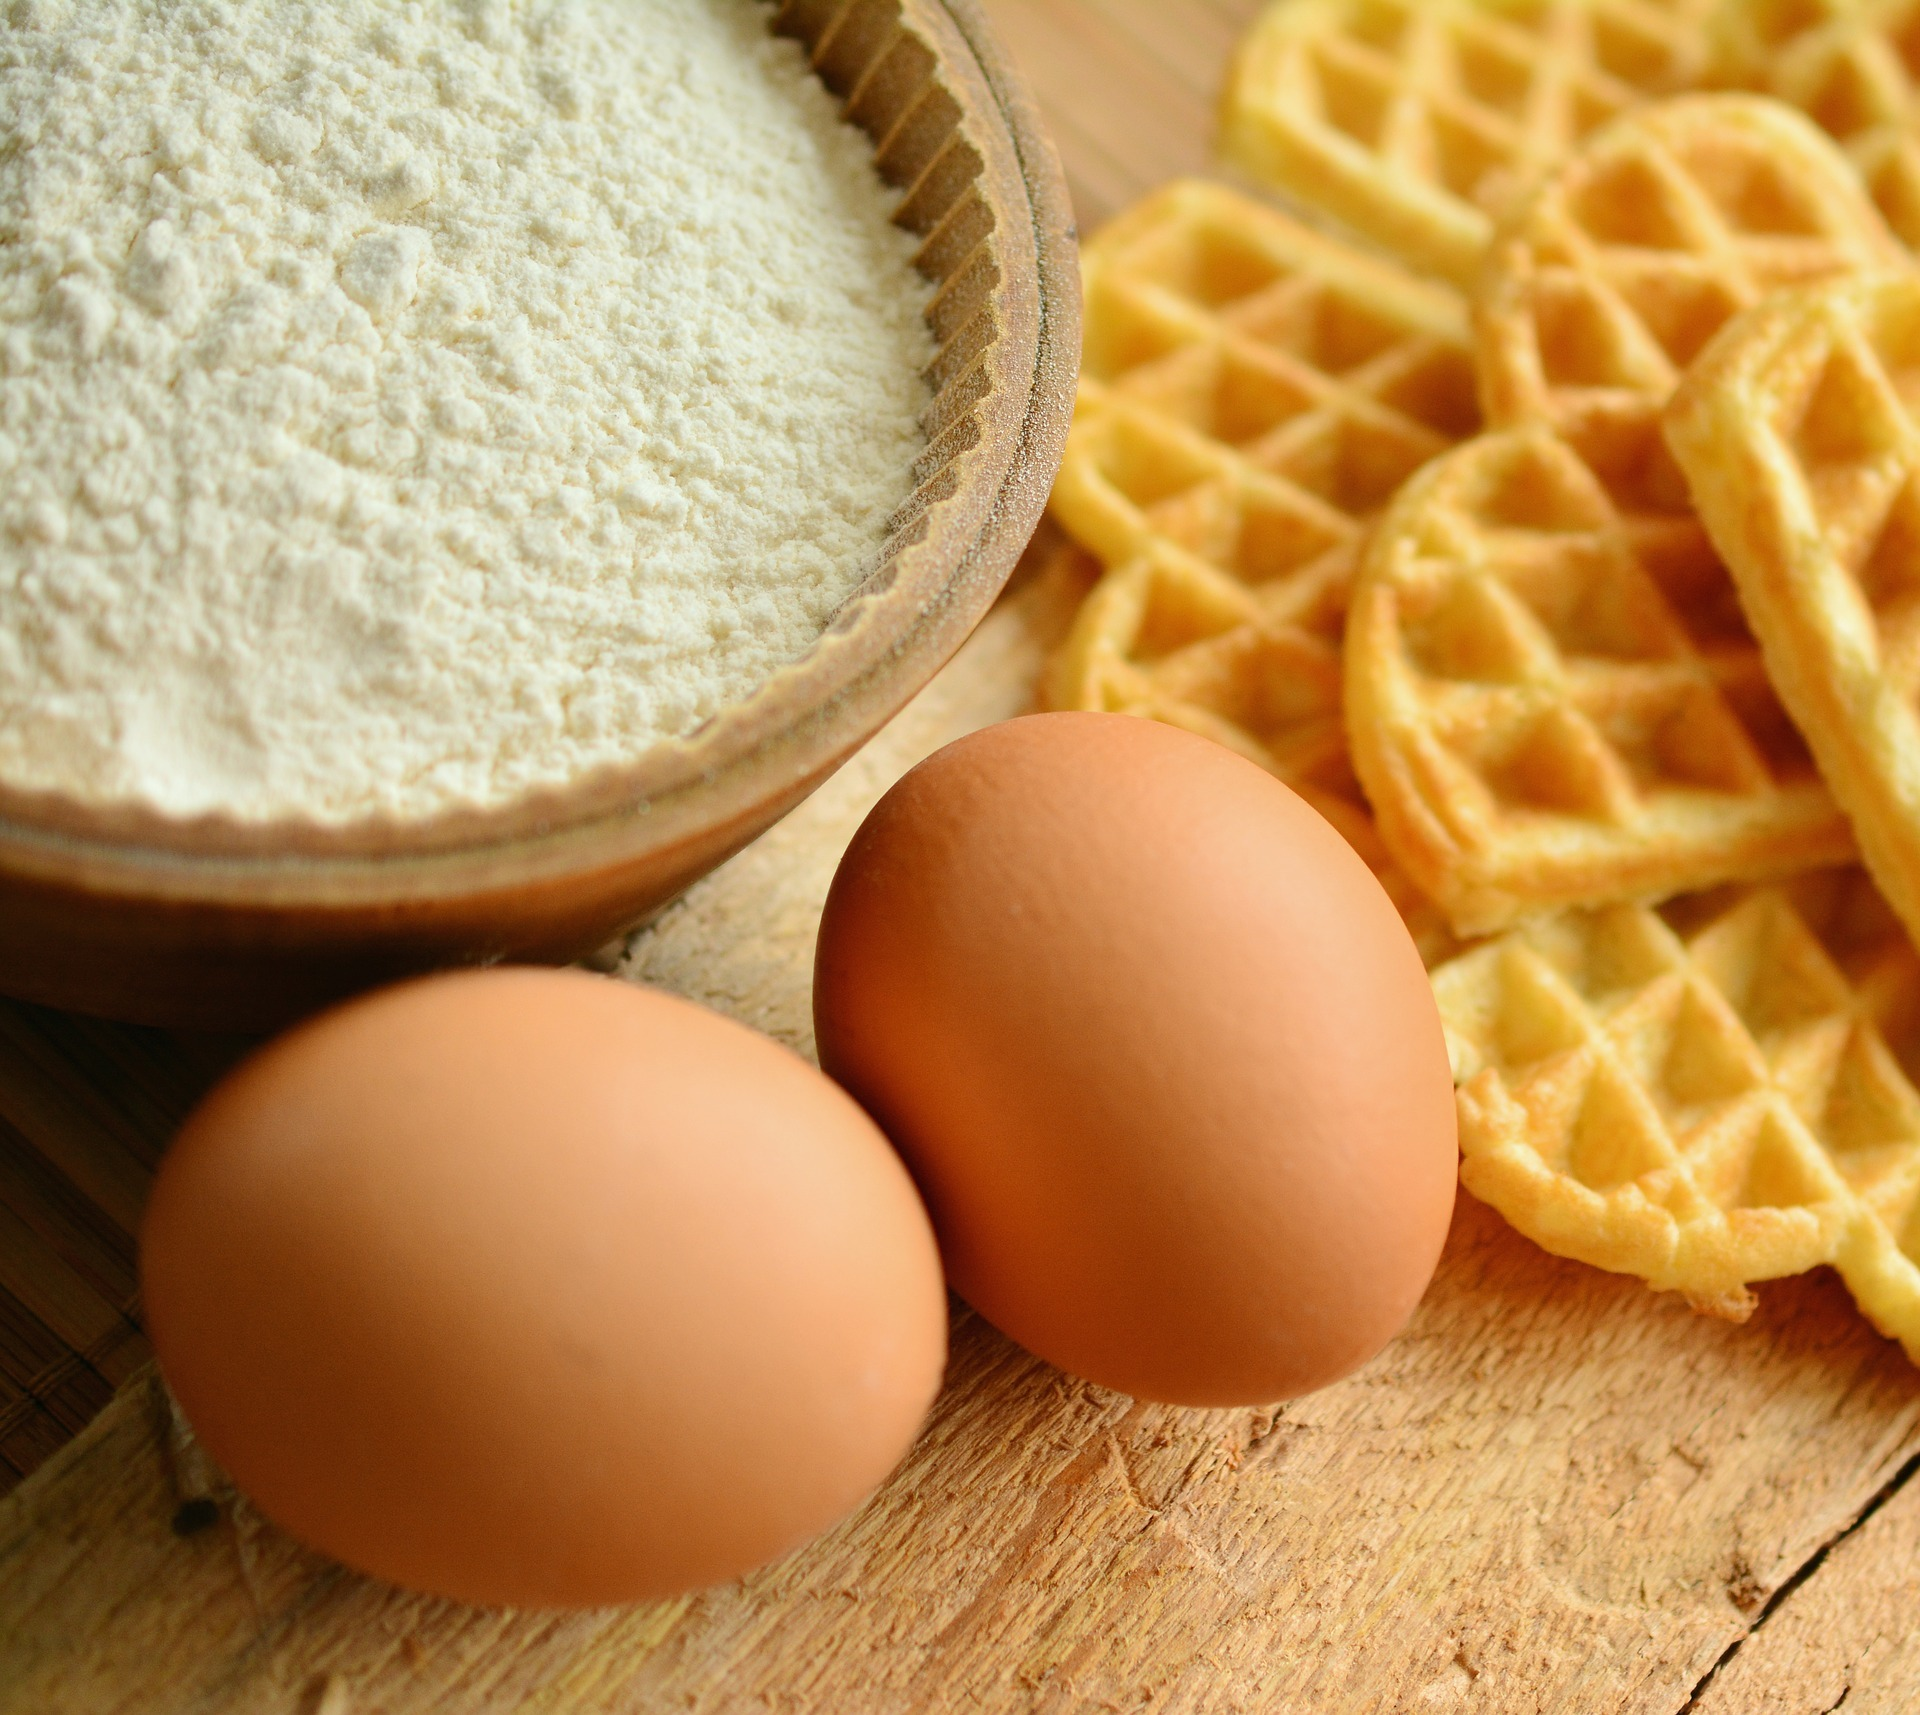 Waffles eggs and flour ready to make brunch